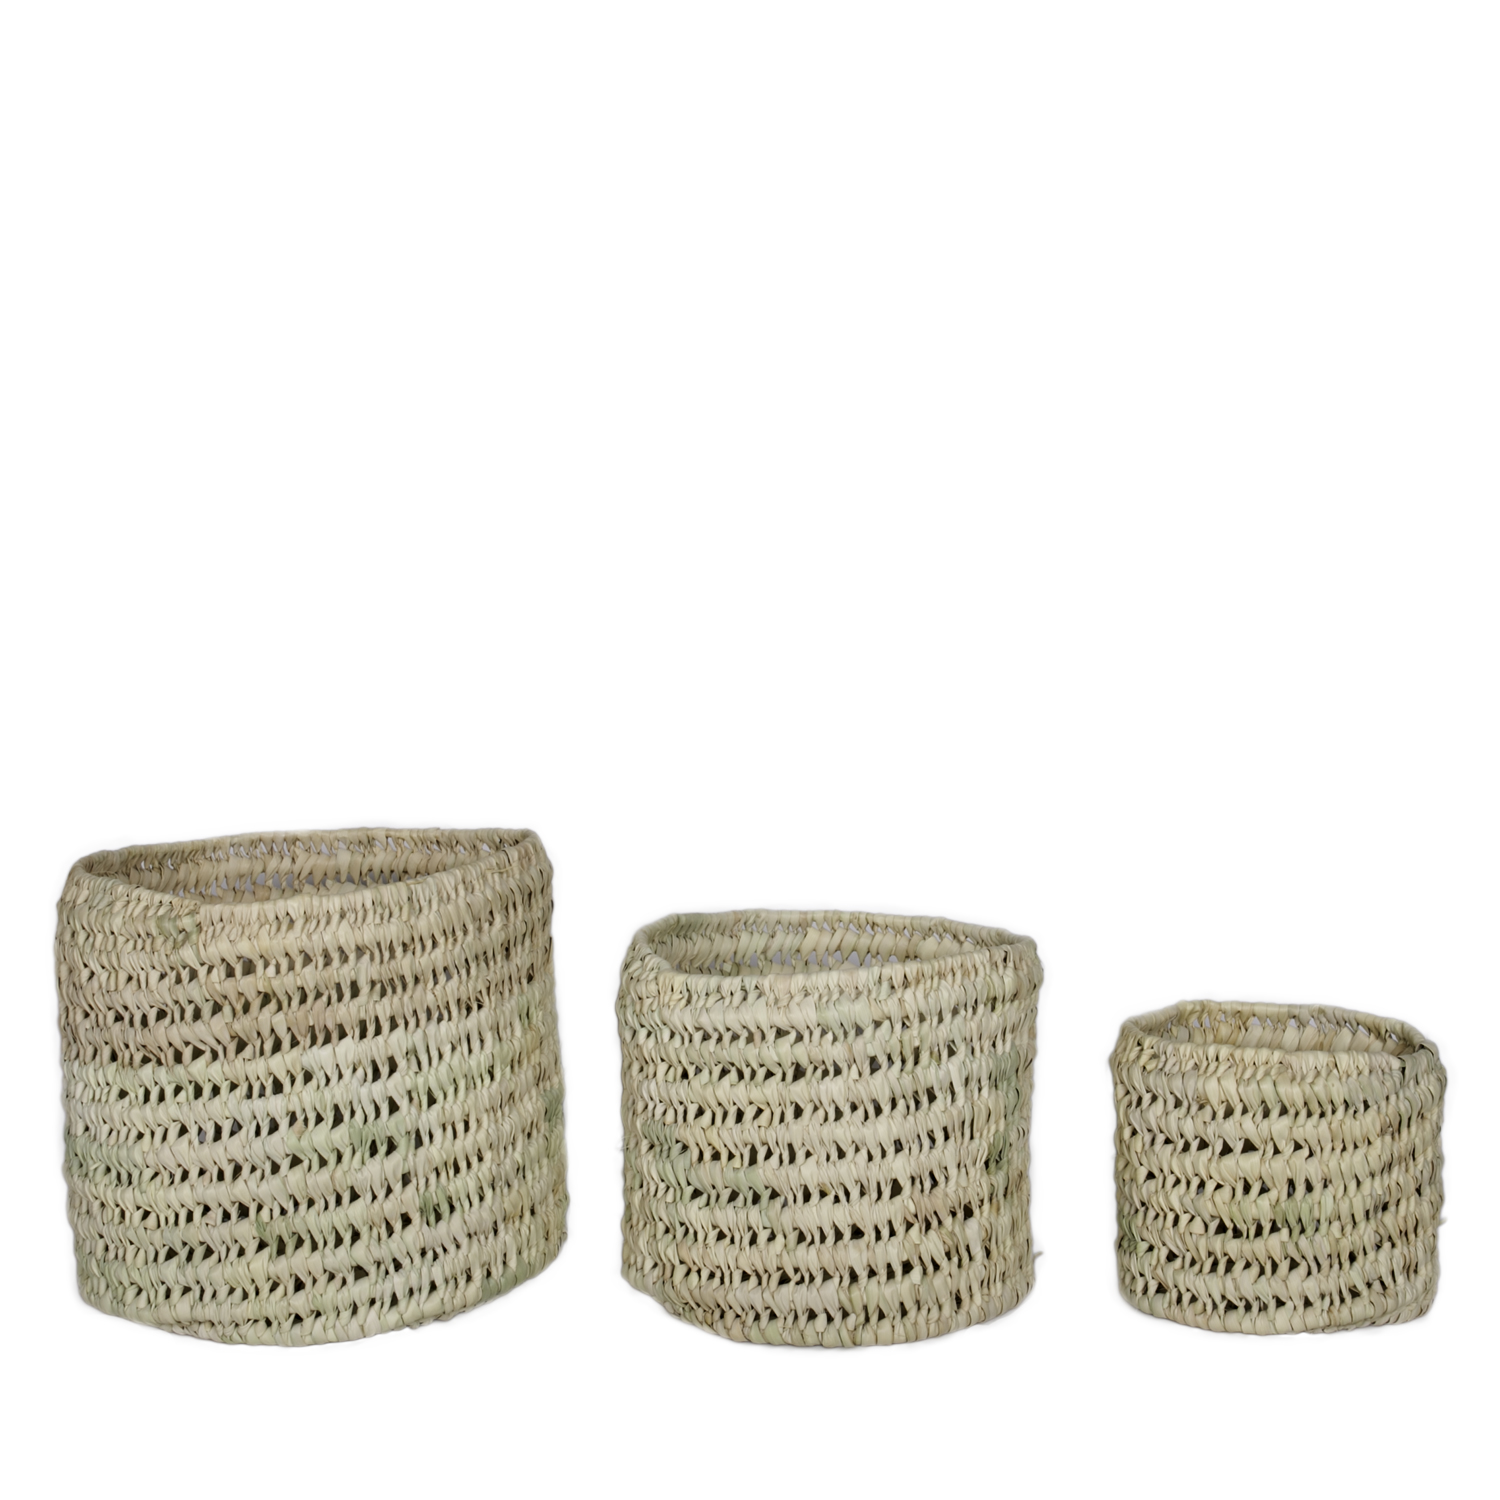 Baskets Nadien set of three COMING SOON